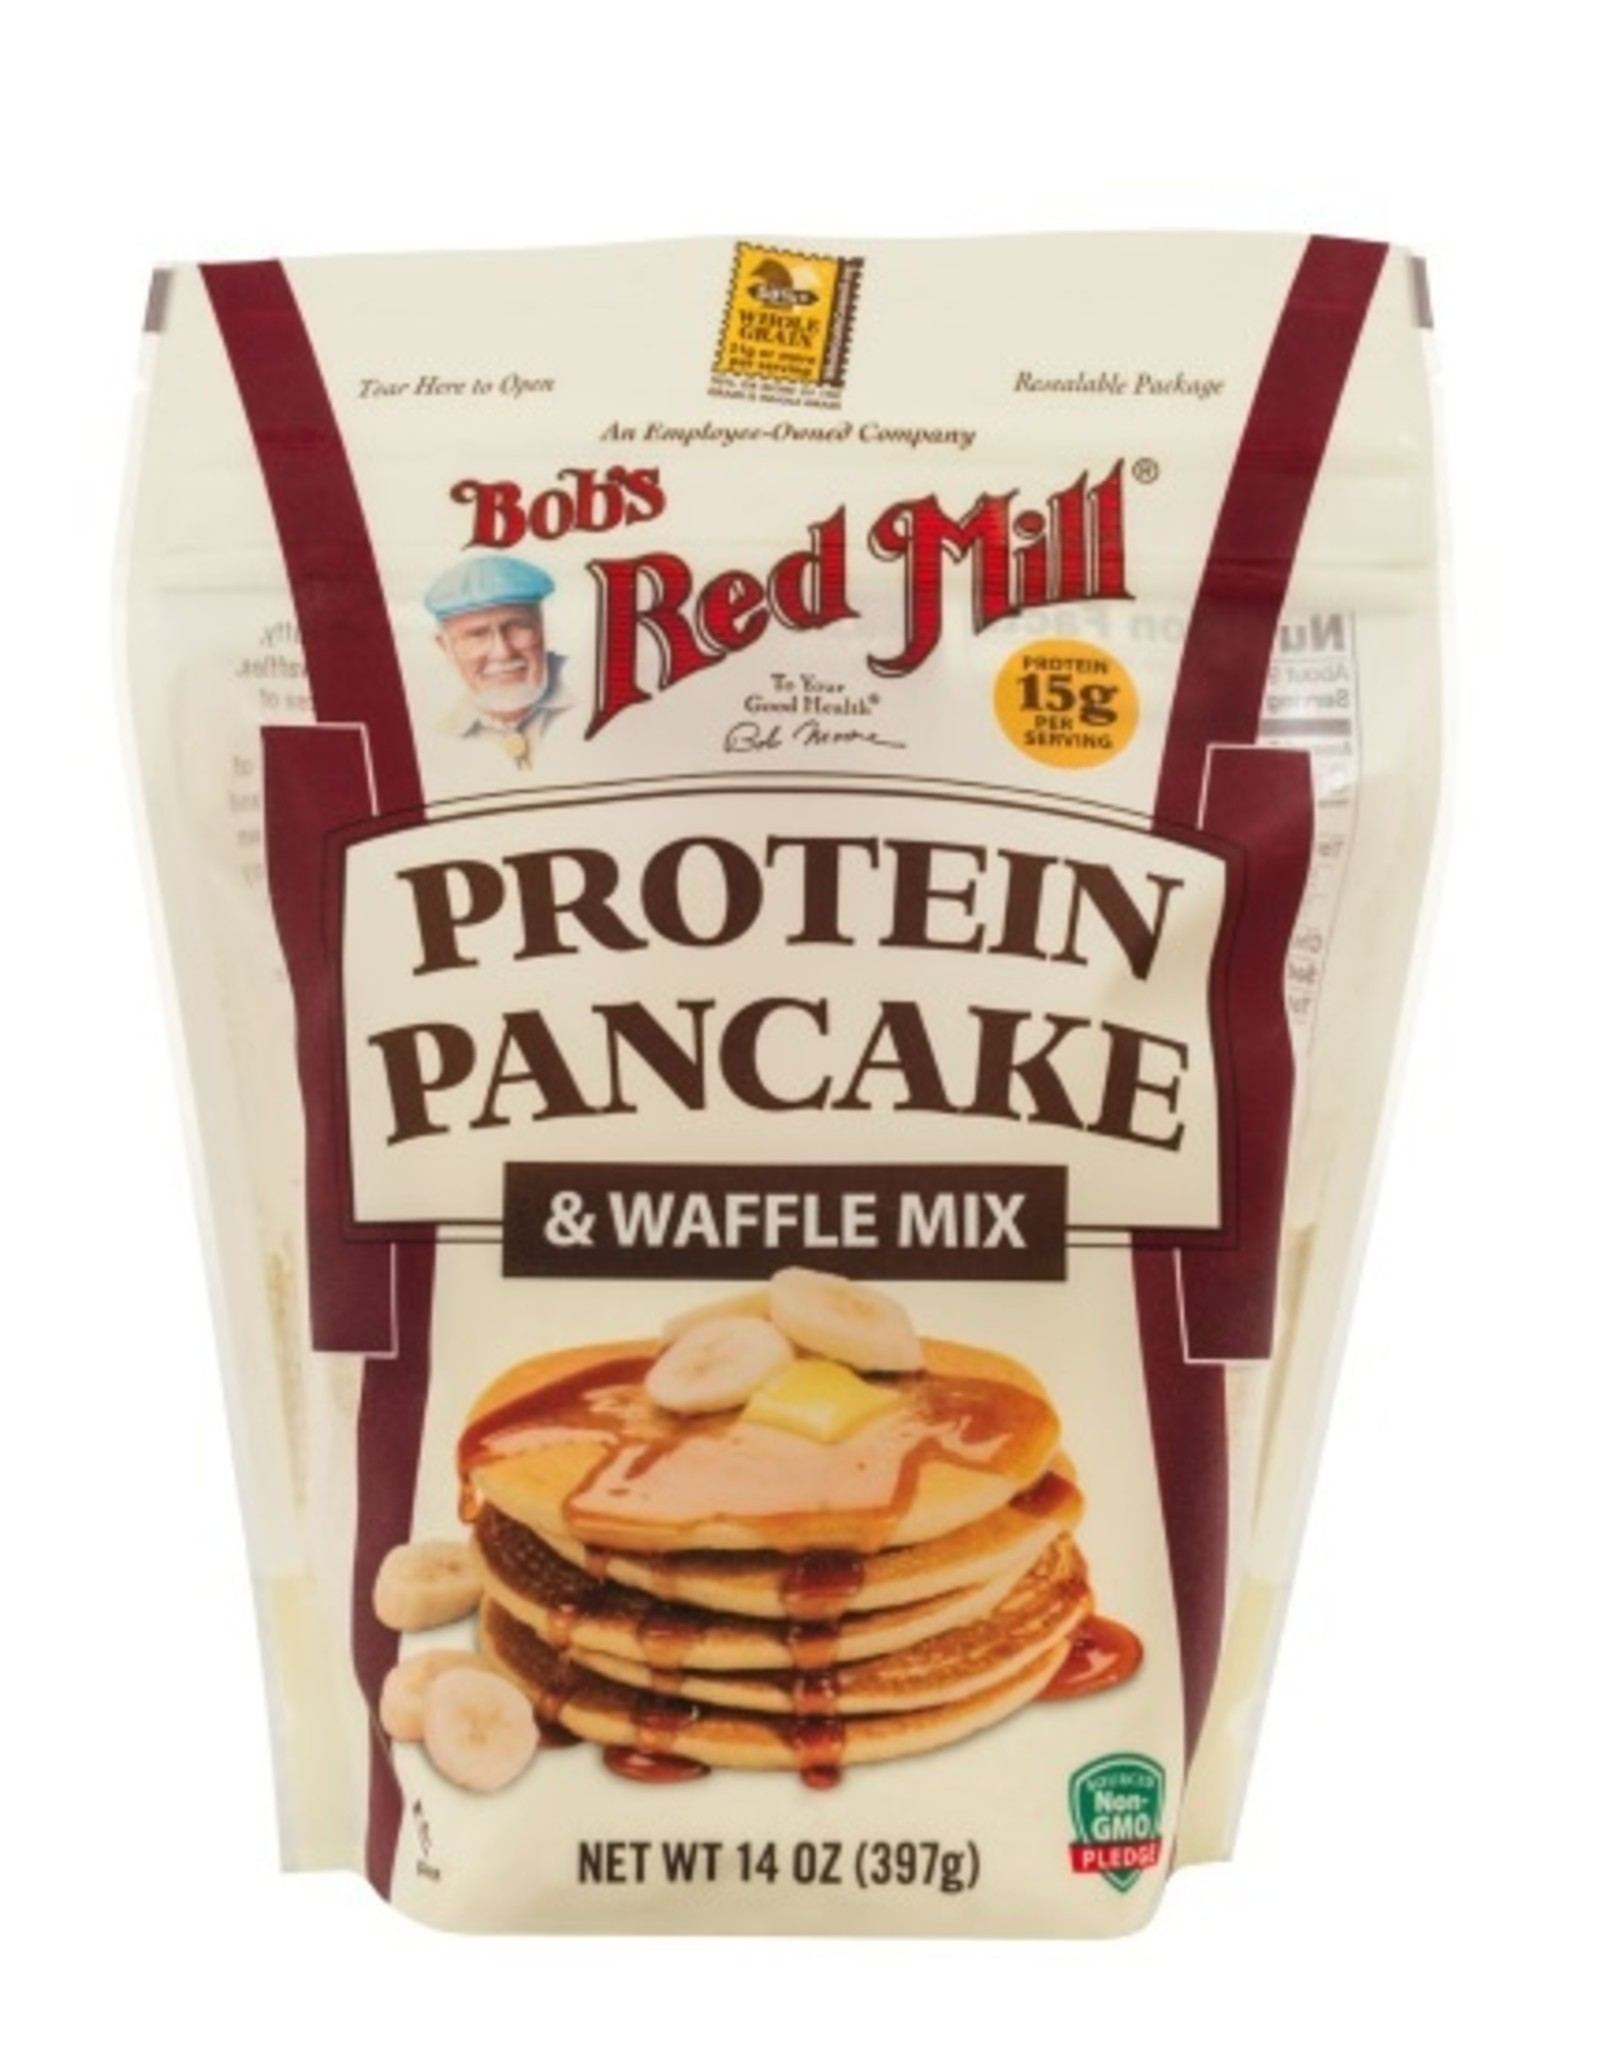 Bob's Red Mill Bobs Red Mill - Protein Pancake & Waffle Mix